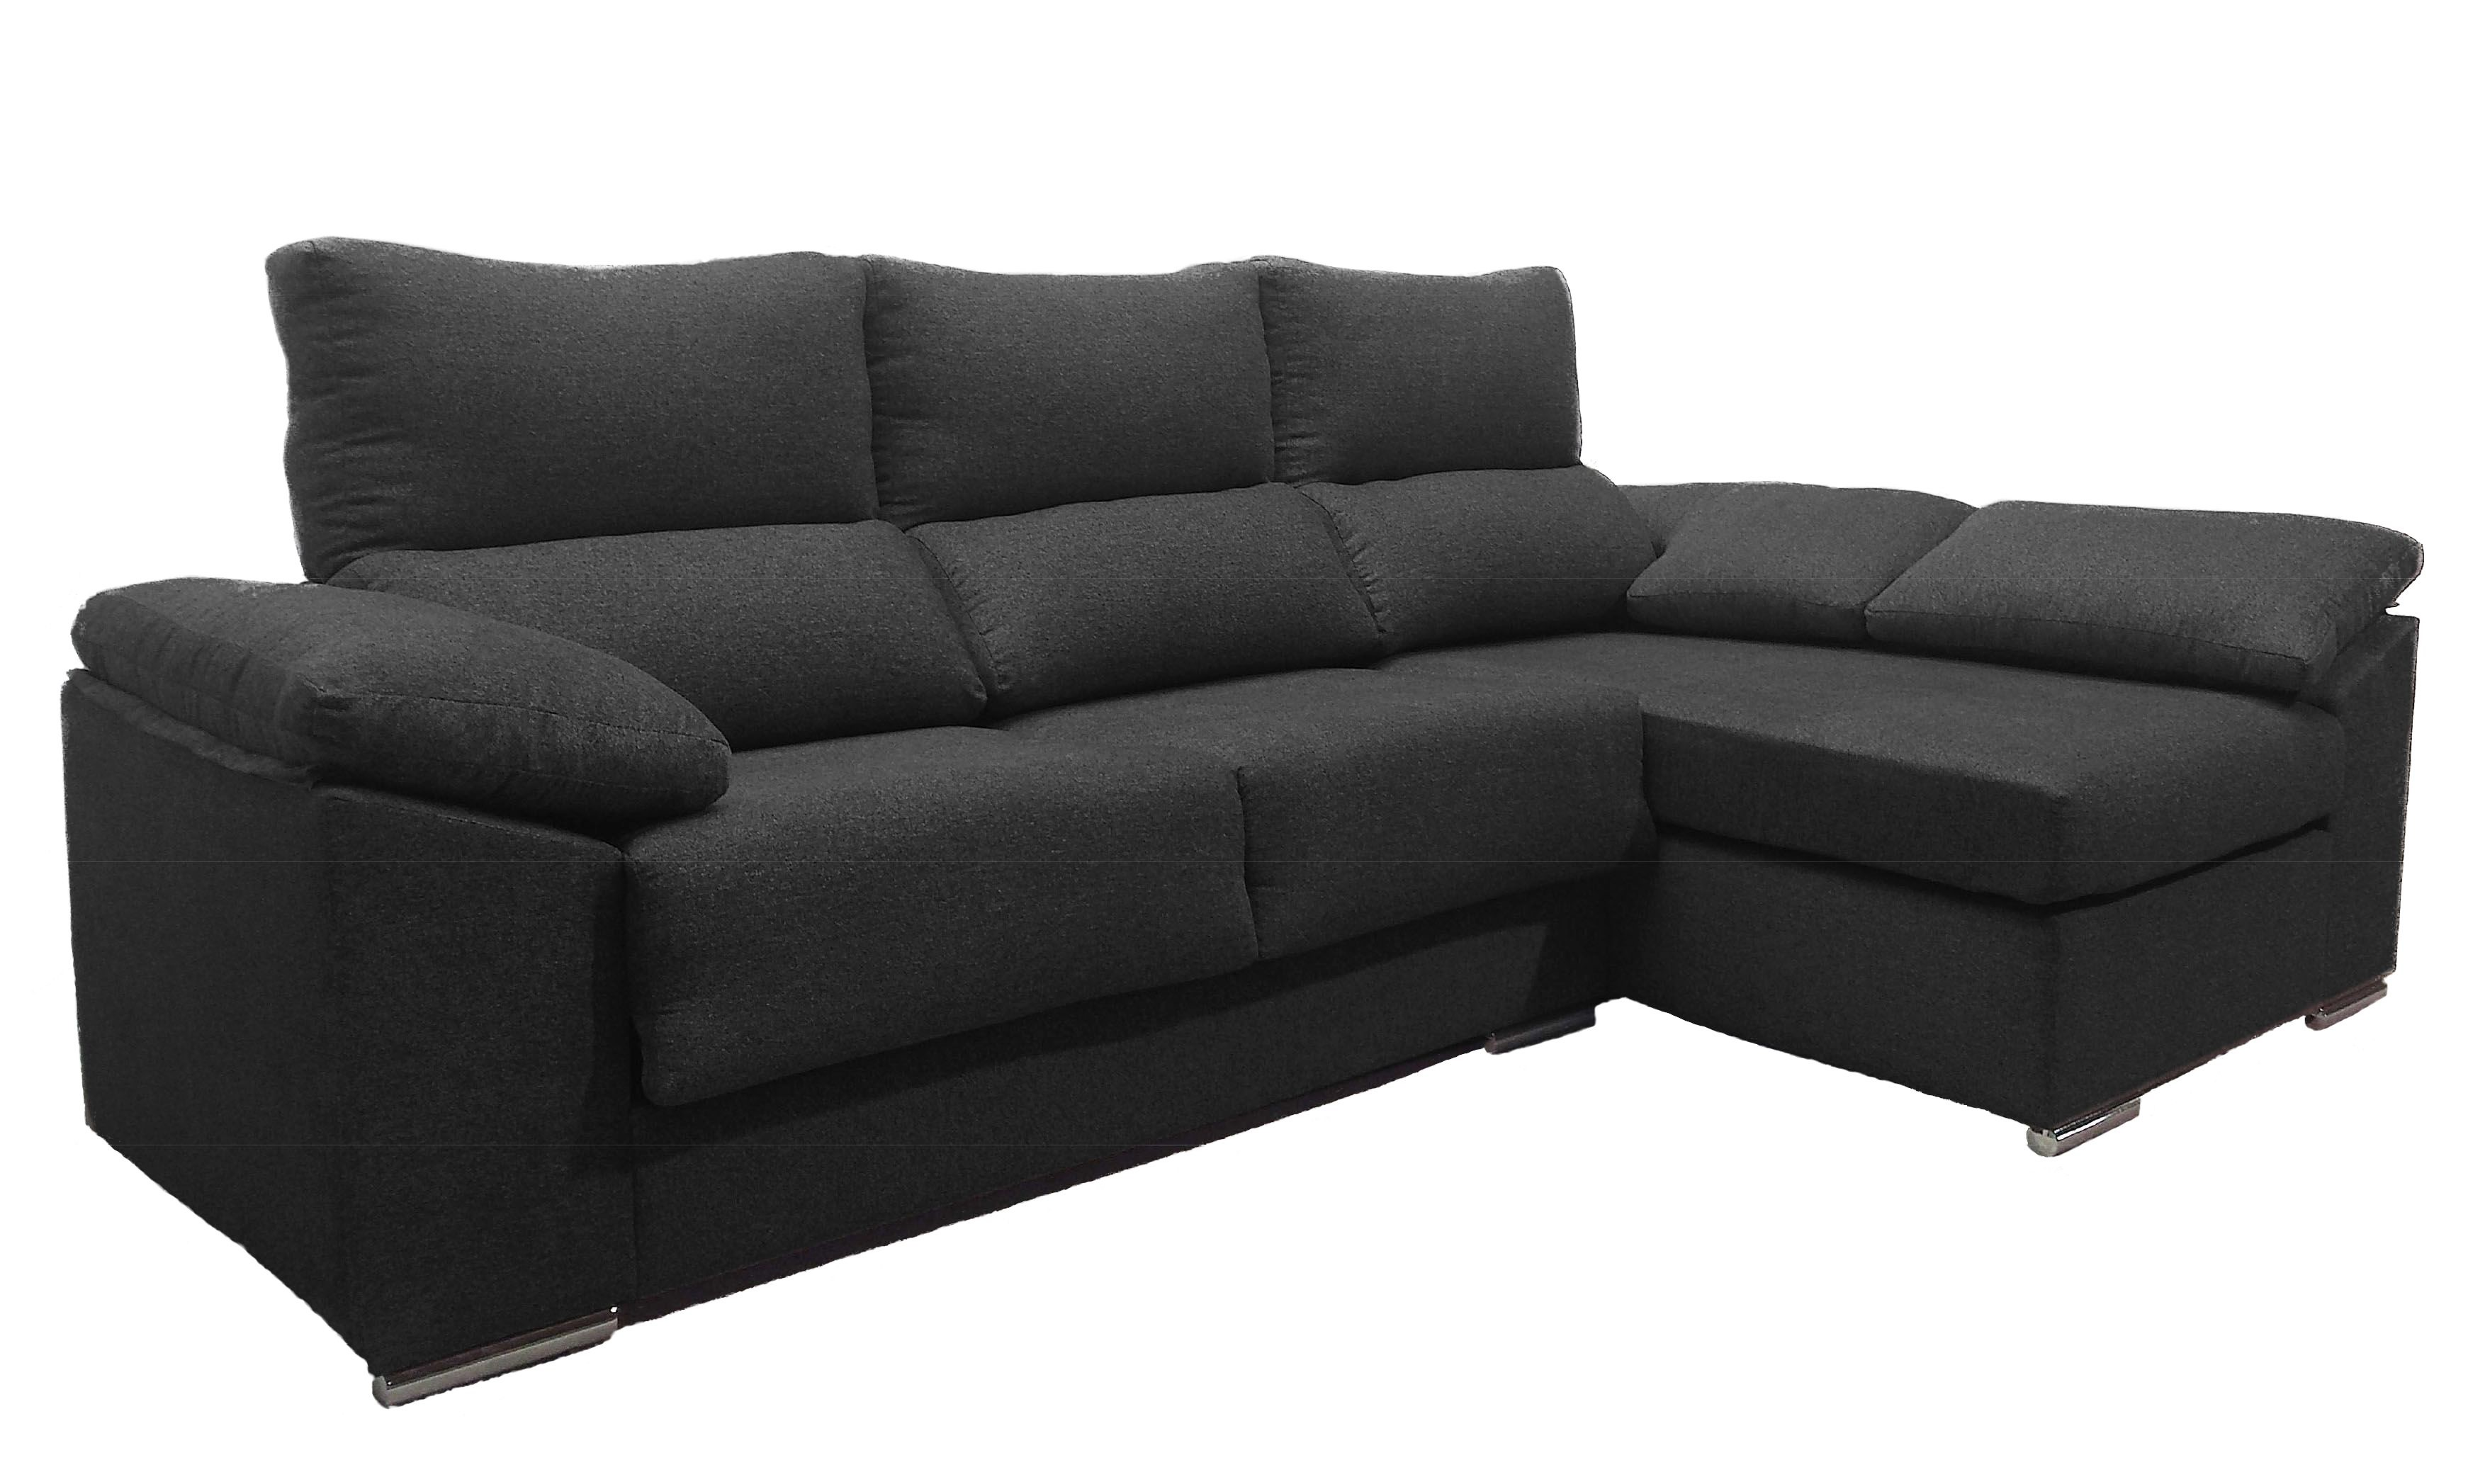 Sofa rinconera con chaise longue ideas de disenos for Sofas para jardin baratos